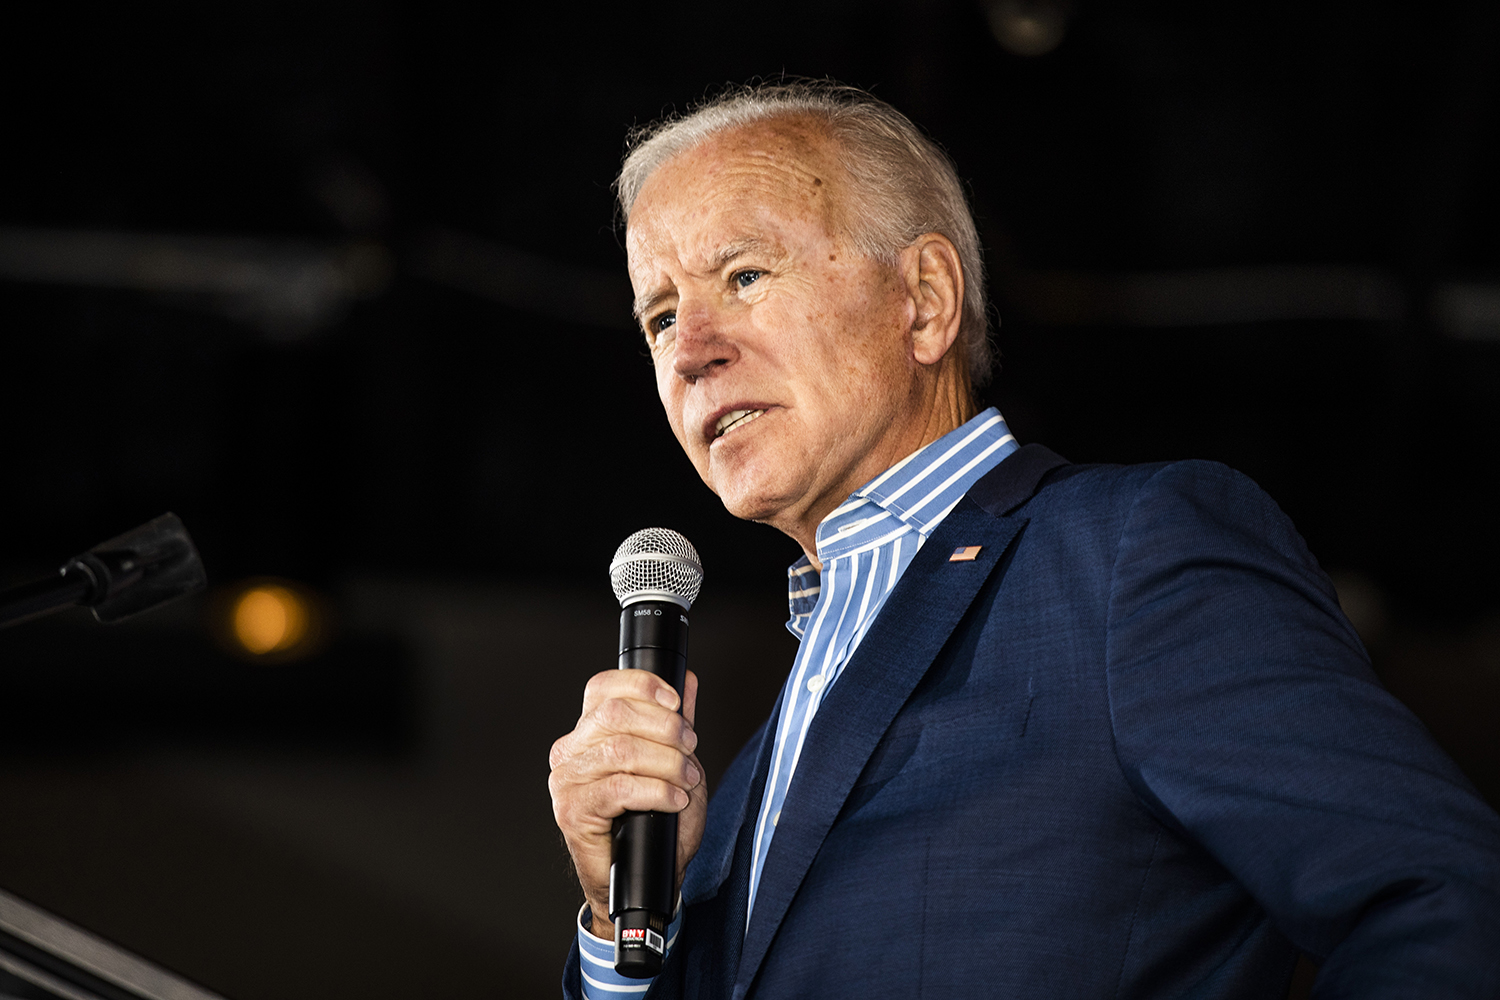 Former Vice President and 2020 Democratic Presidential candidate Joe Biden addresses issues in society at Big Grove Brewery in Iowa City on Wednesday, May 1, 2019. Iowa City was the second stop on the Iowa Kickoff Tour for the Biden campaign.